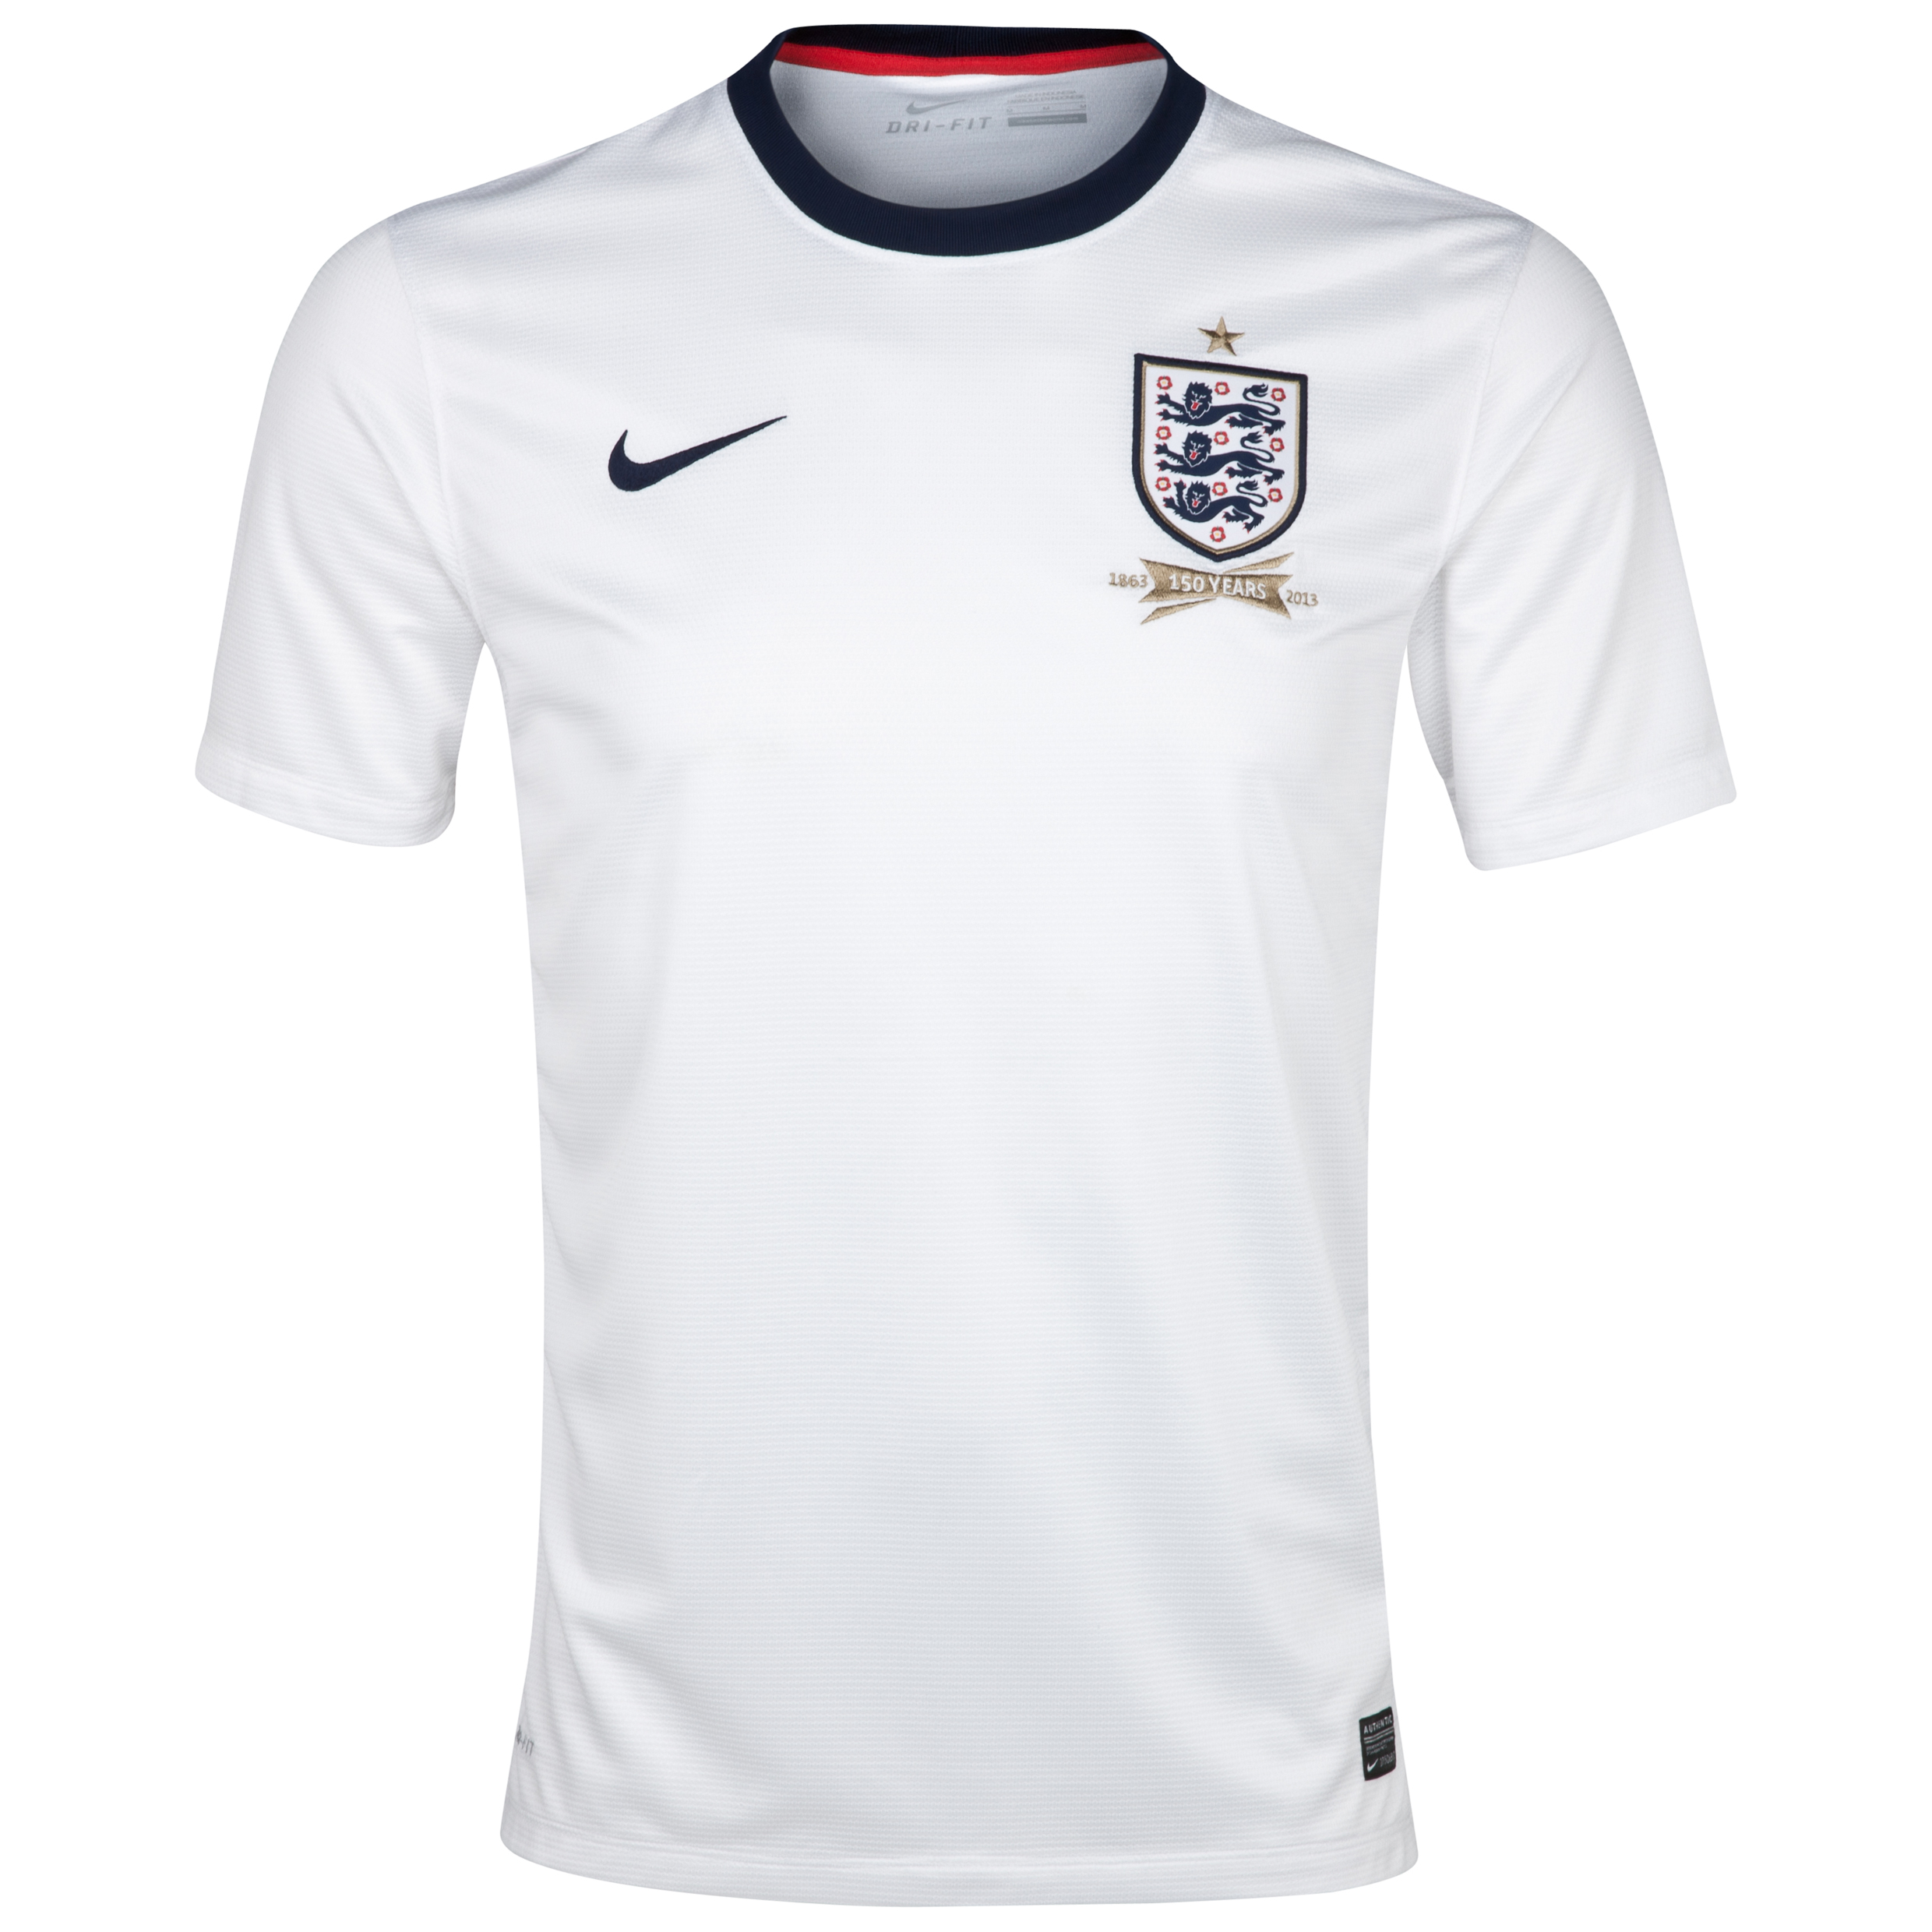 England Home Shirt 2013/14 Mens White